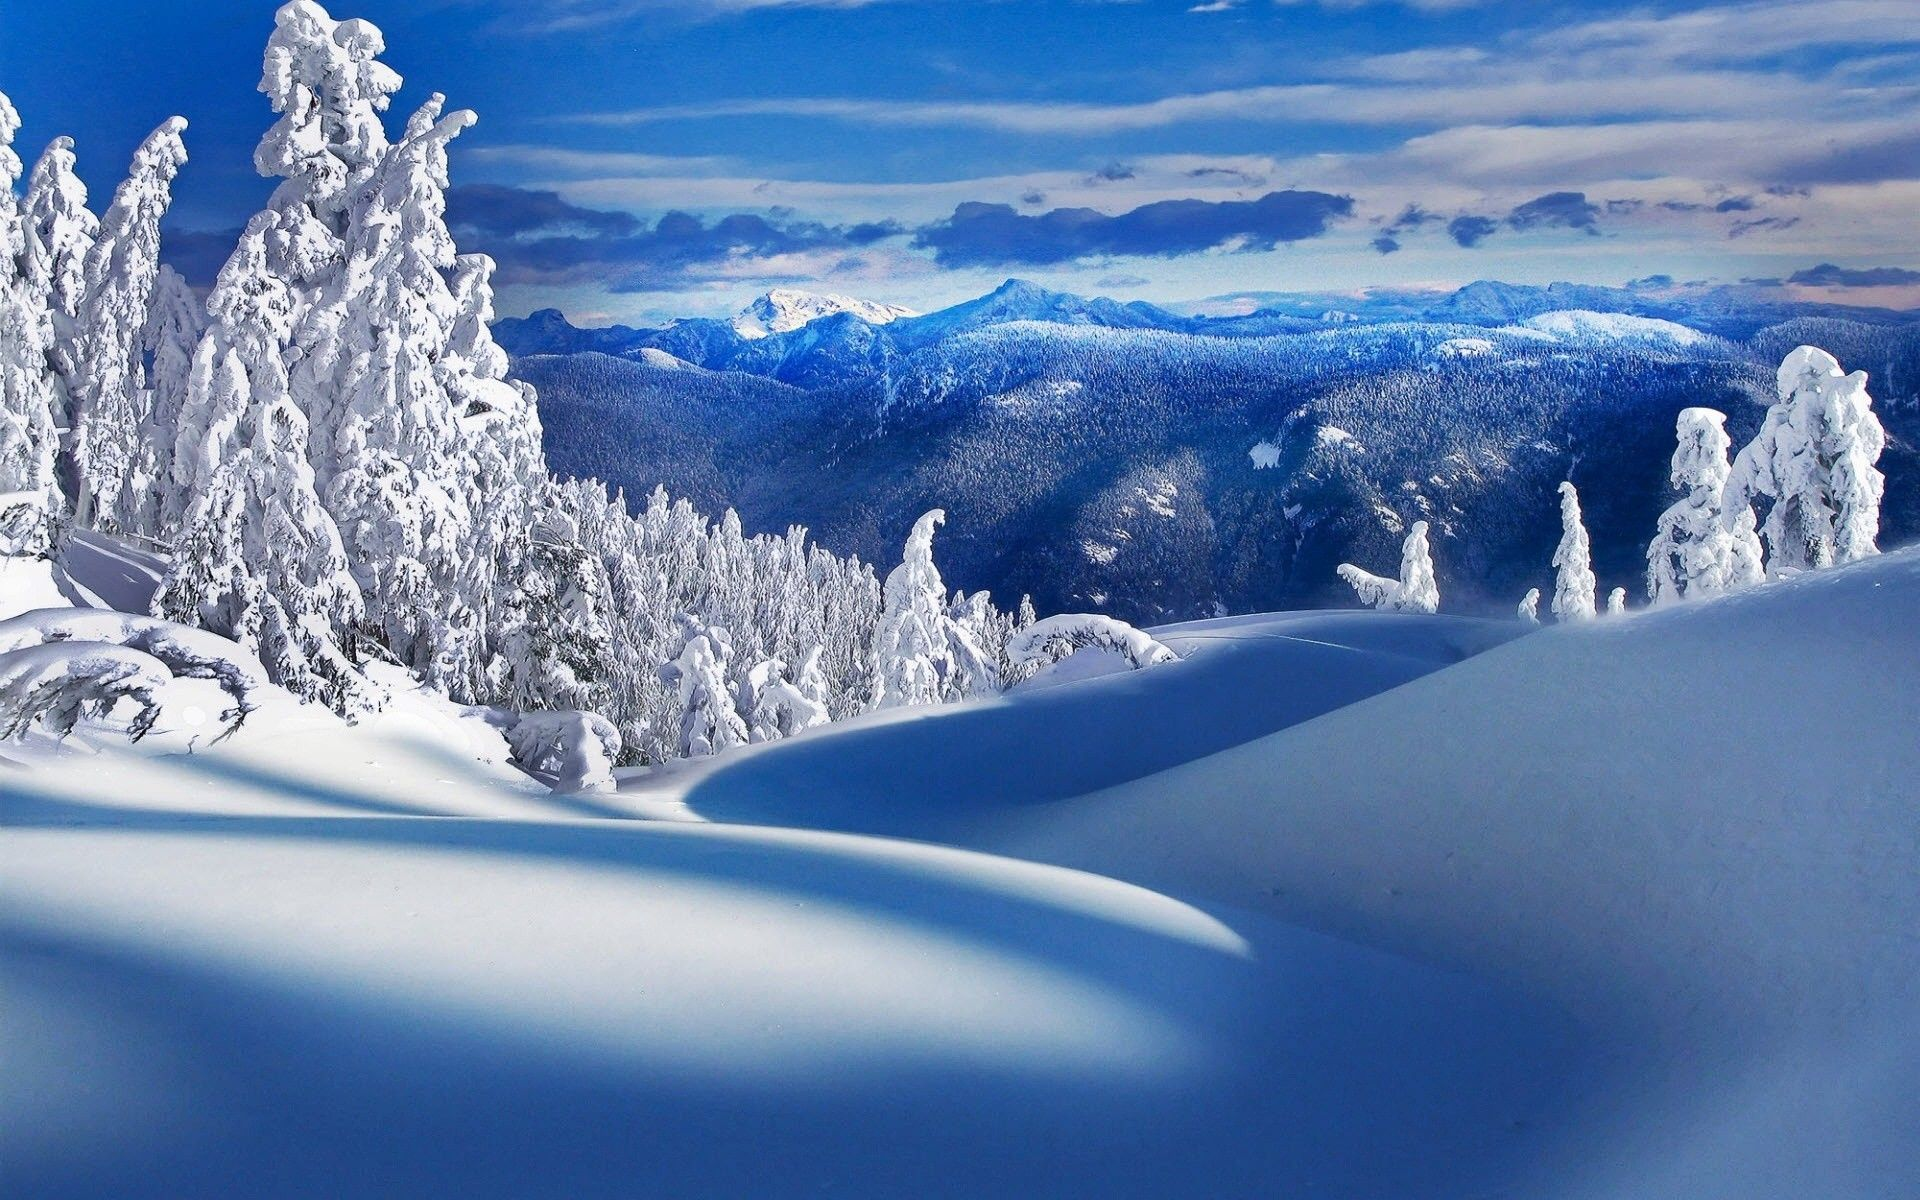 Winter Mountain Scene Desktop Wallpaper Widescreen | Art ...